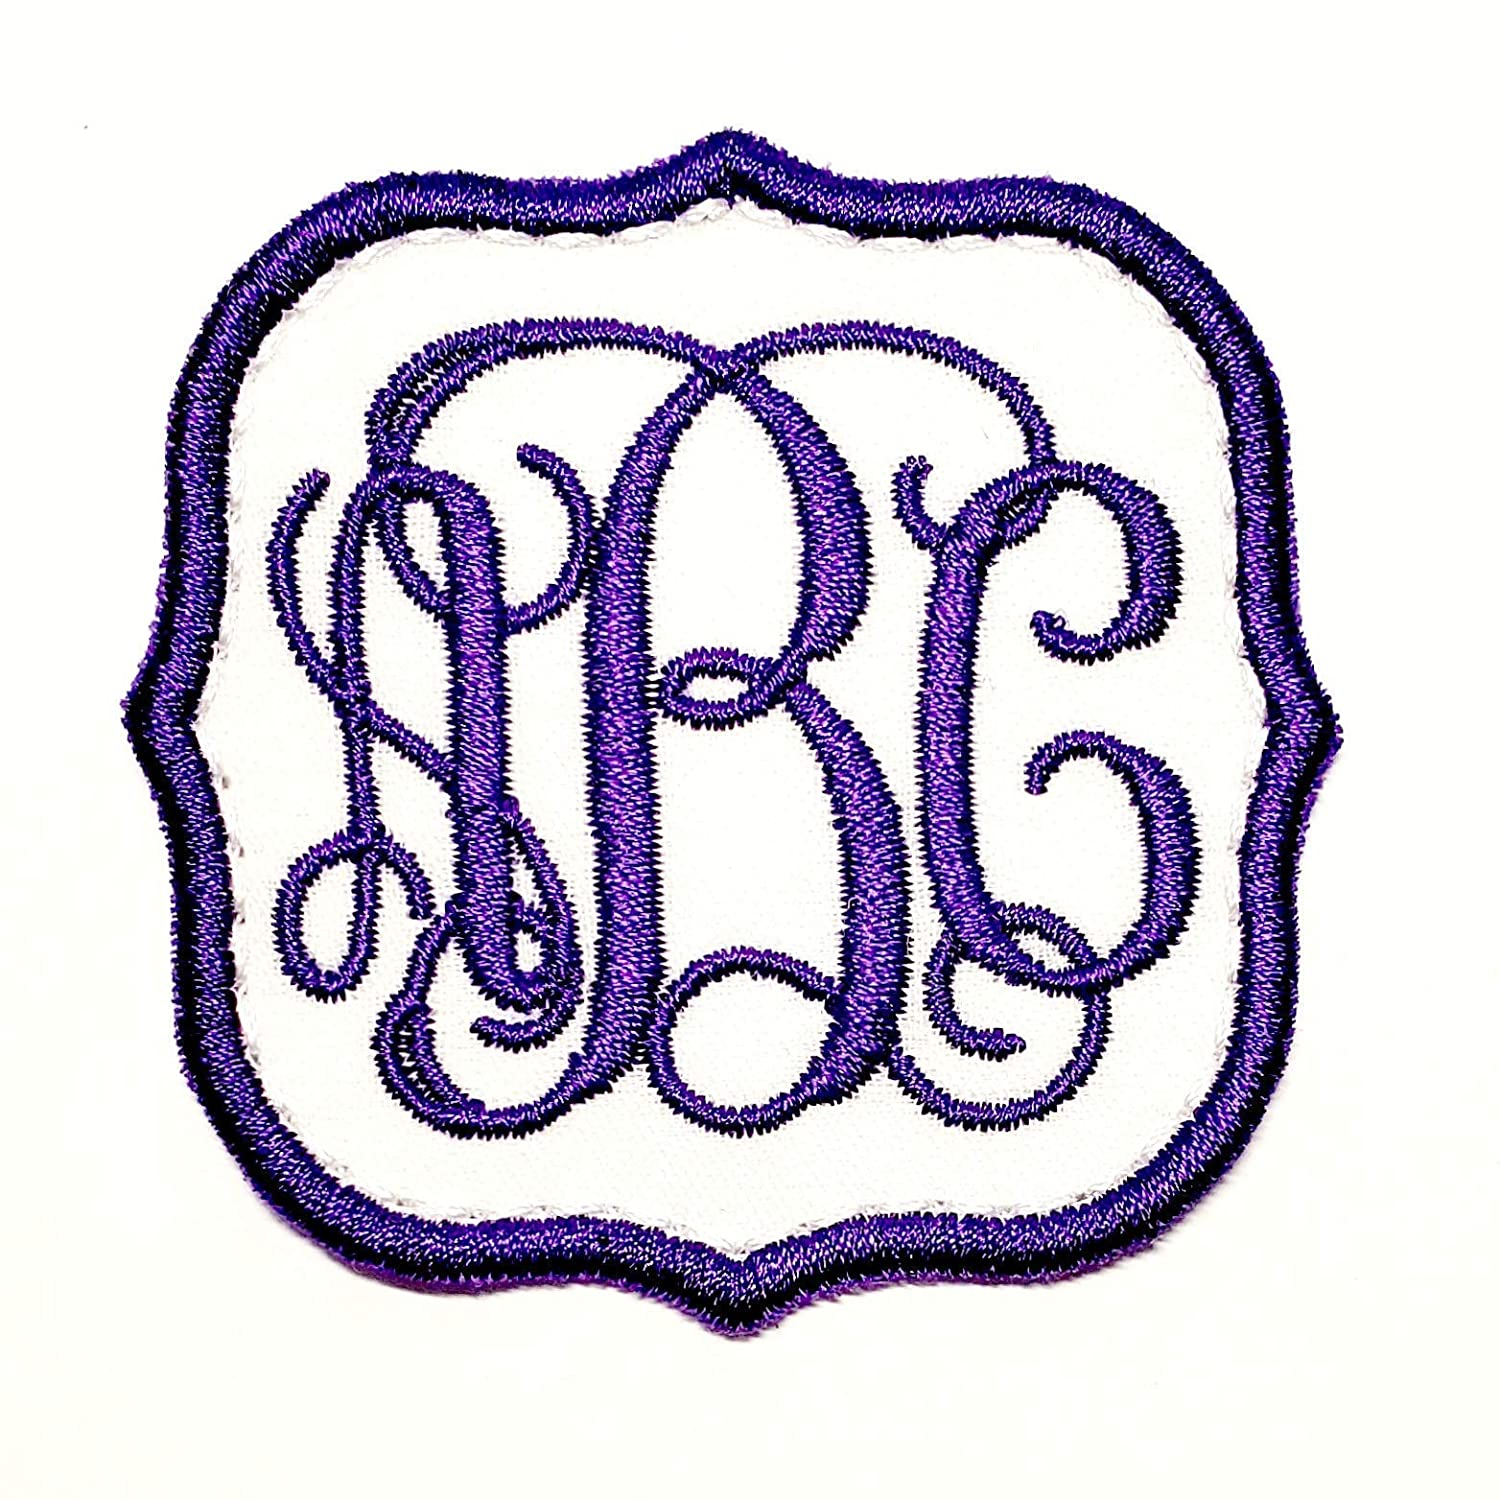 Monogram Vine Font Patch Iron-on Sew-on Embroidered Applique or low-pricing High quality